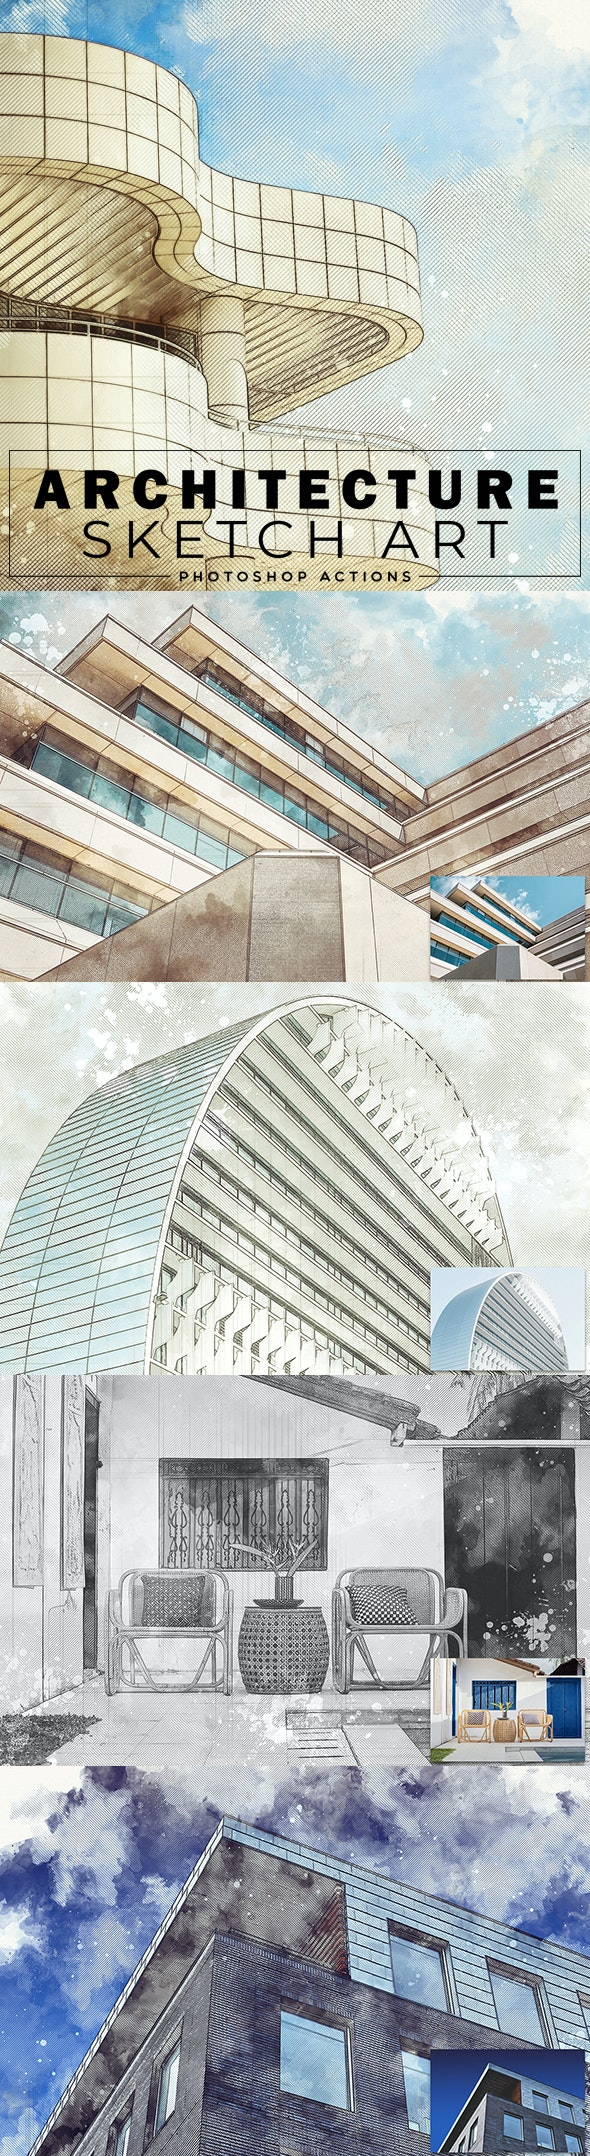 Architecture Sketch Art Photoshop Actions - Photo Effects Actions